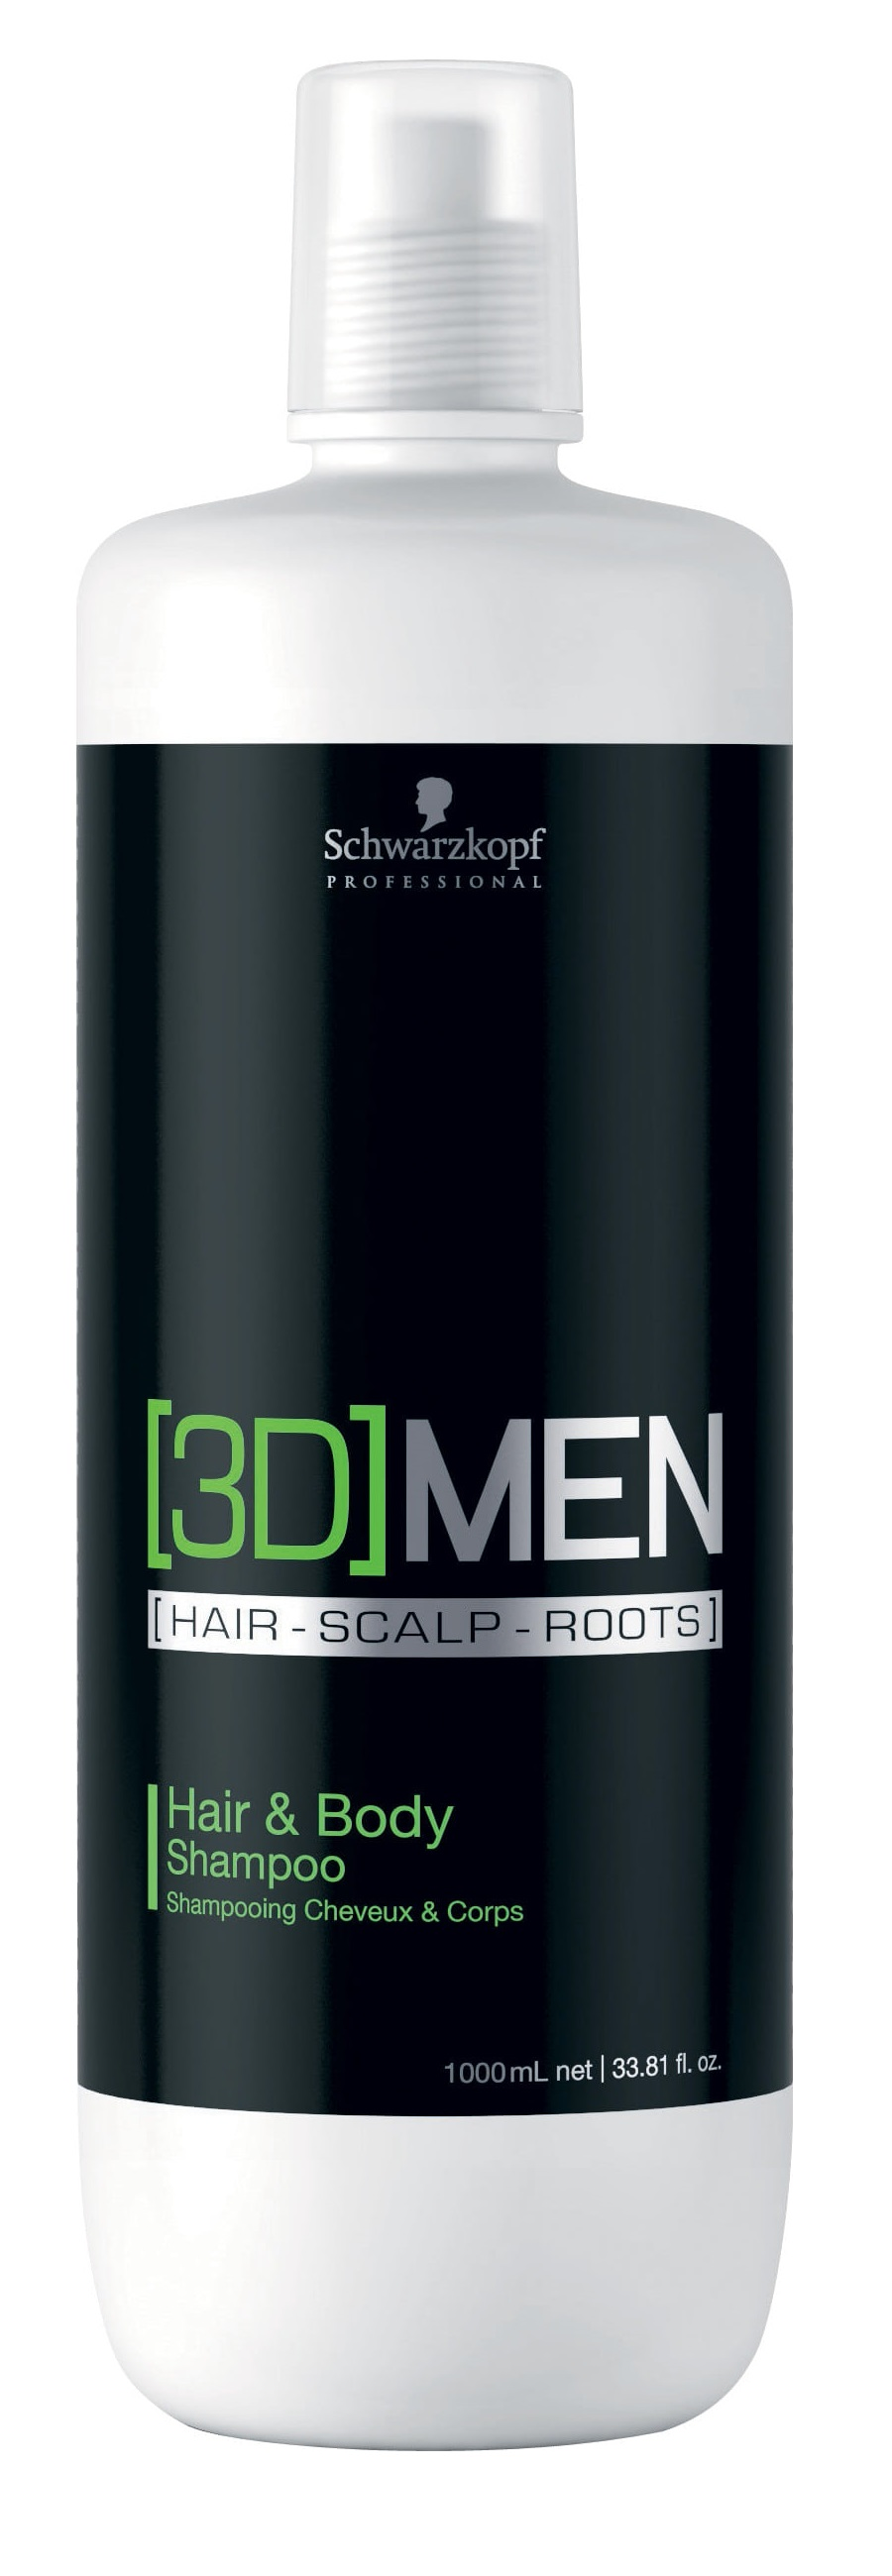 Sulfate Free Shampoos For Colored Curly Hair Male Models